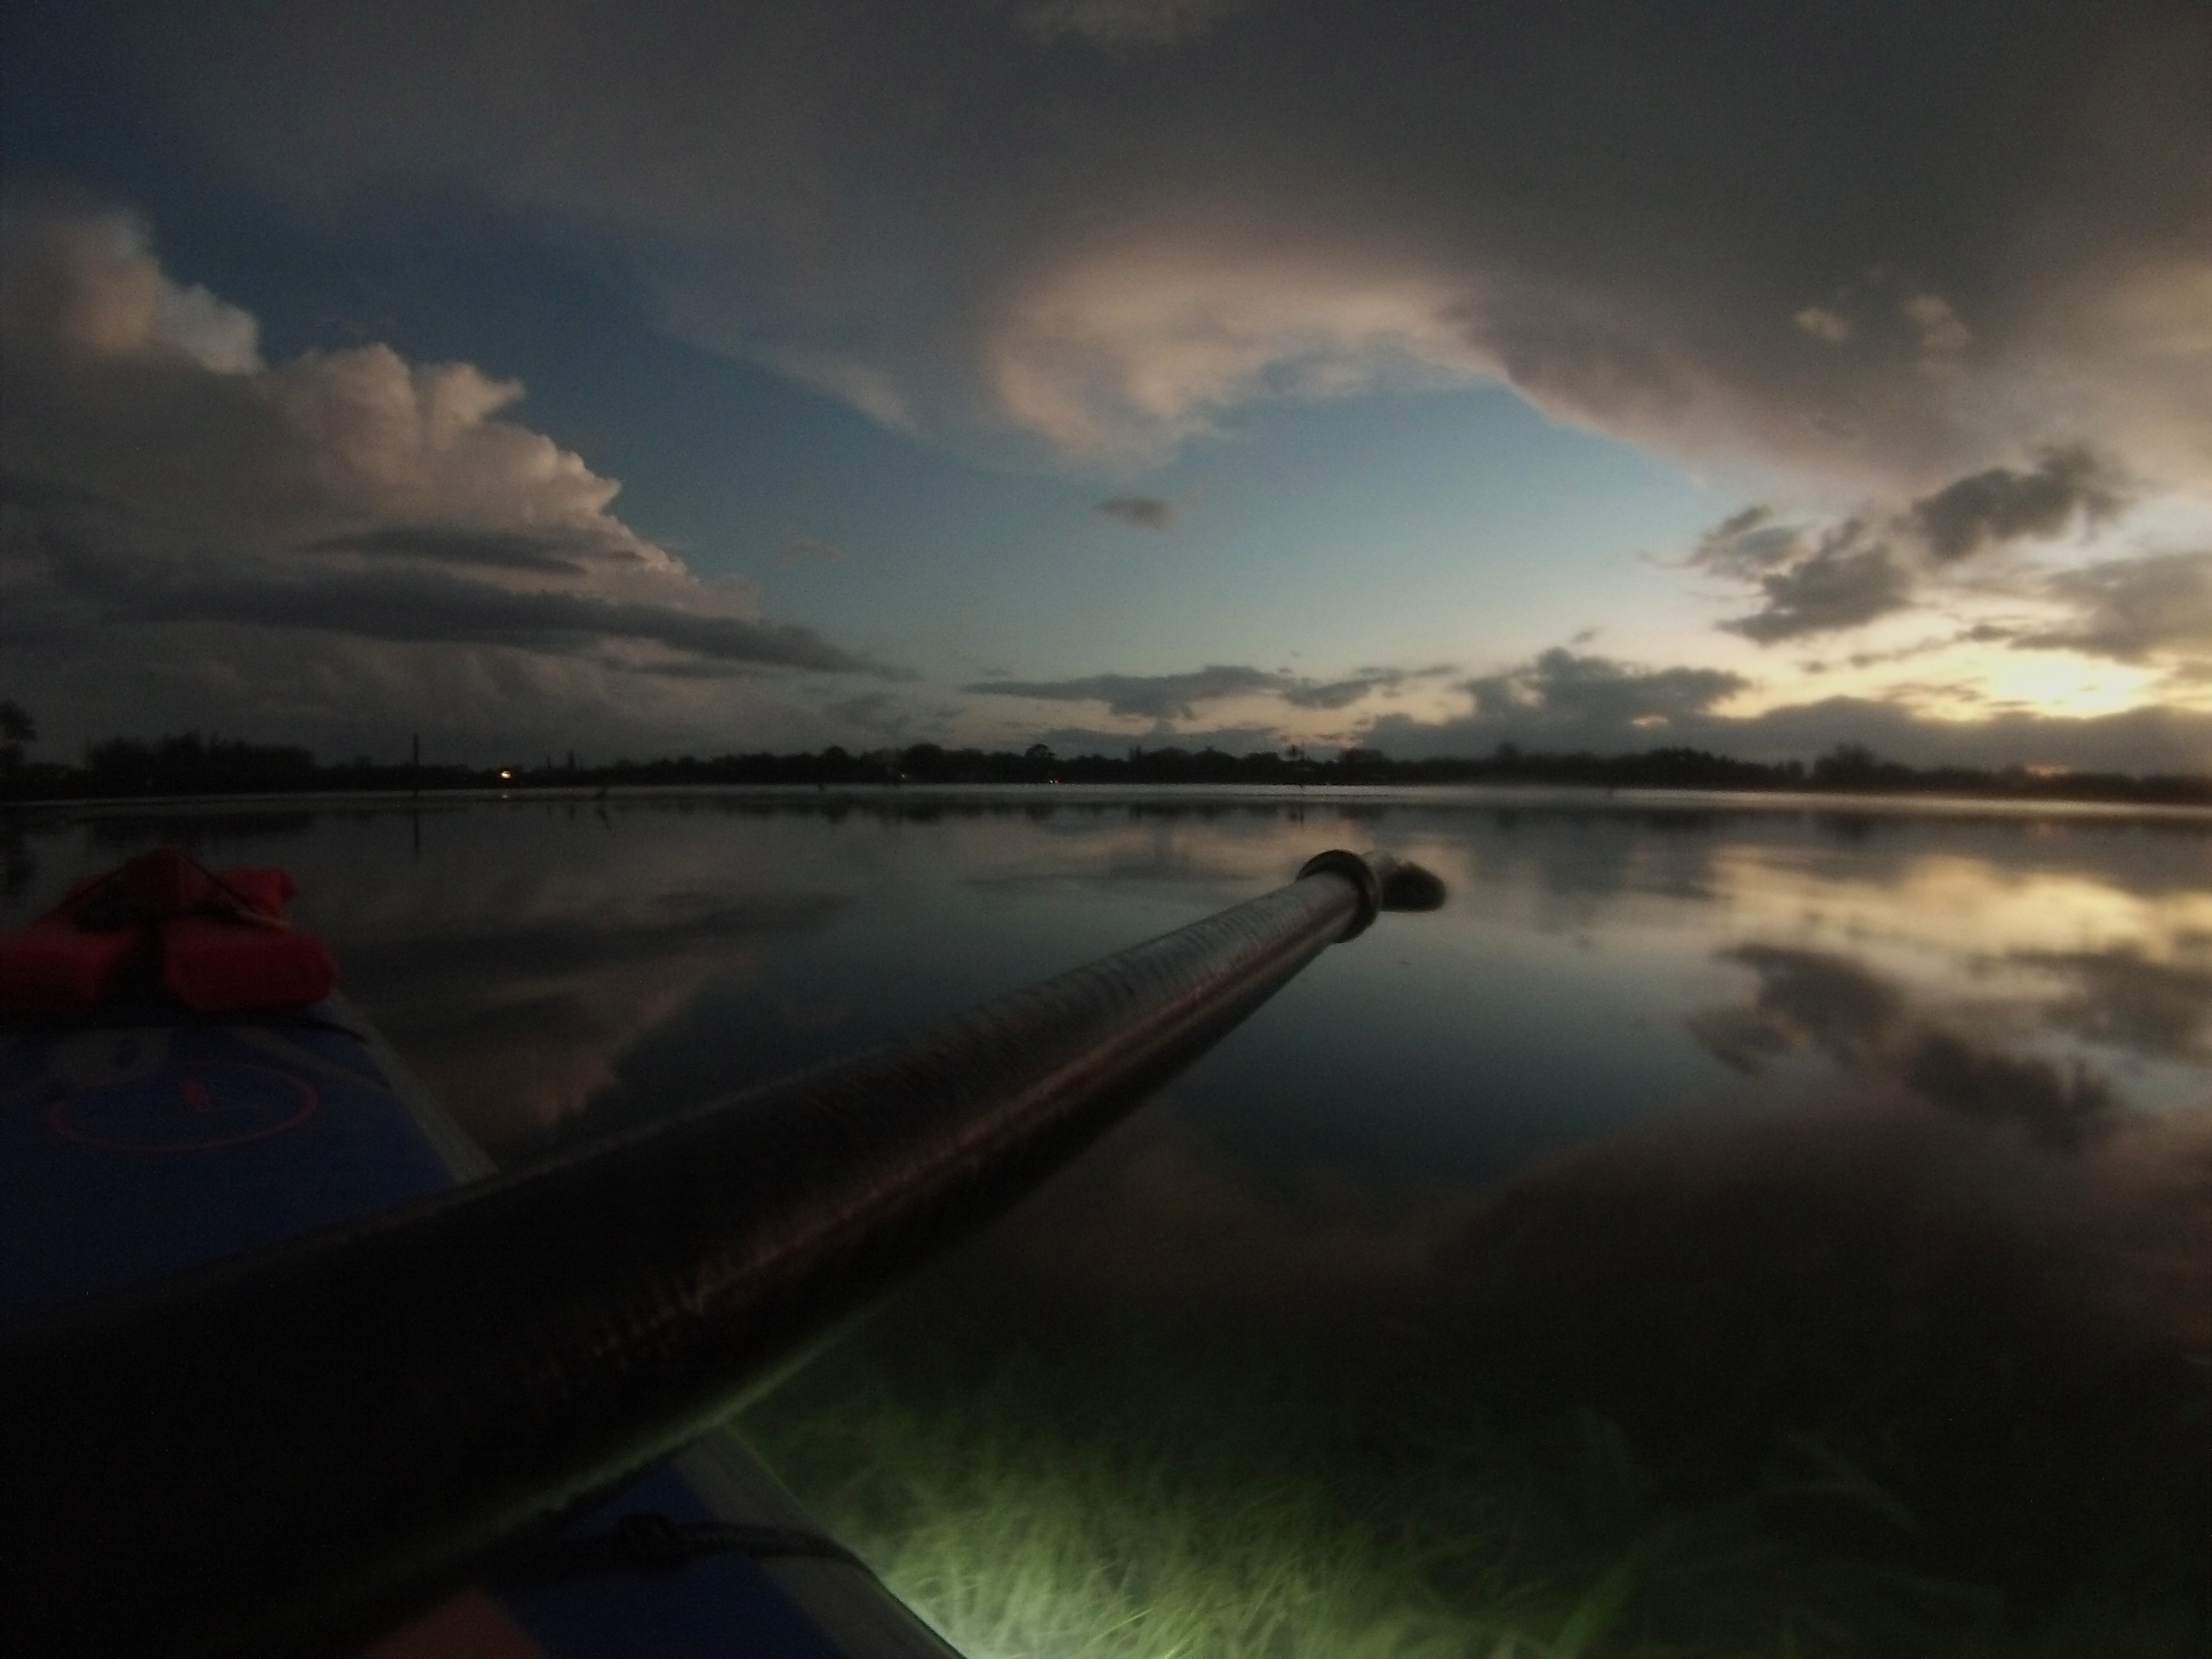 Night Time, Lighted Standup Paddle Boarding with Hooked on SUP, Placida, Fla., May 16, 2015